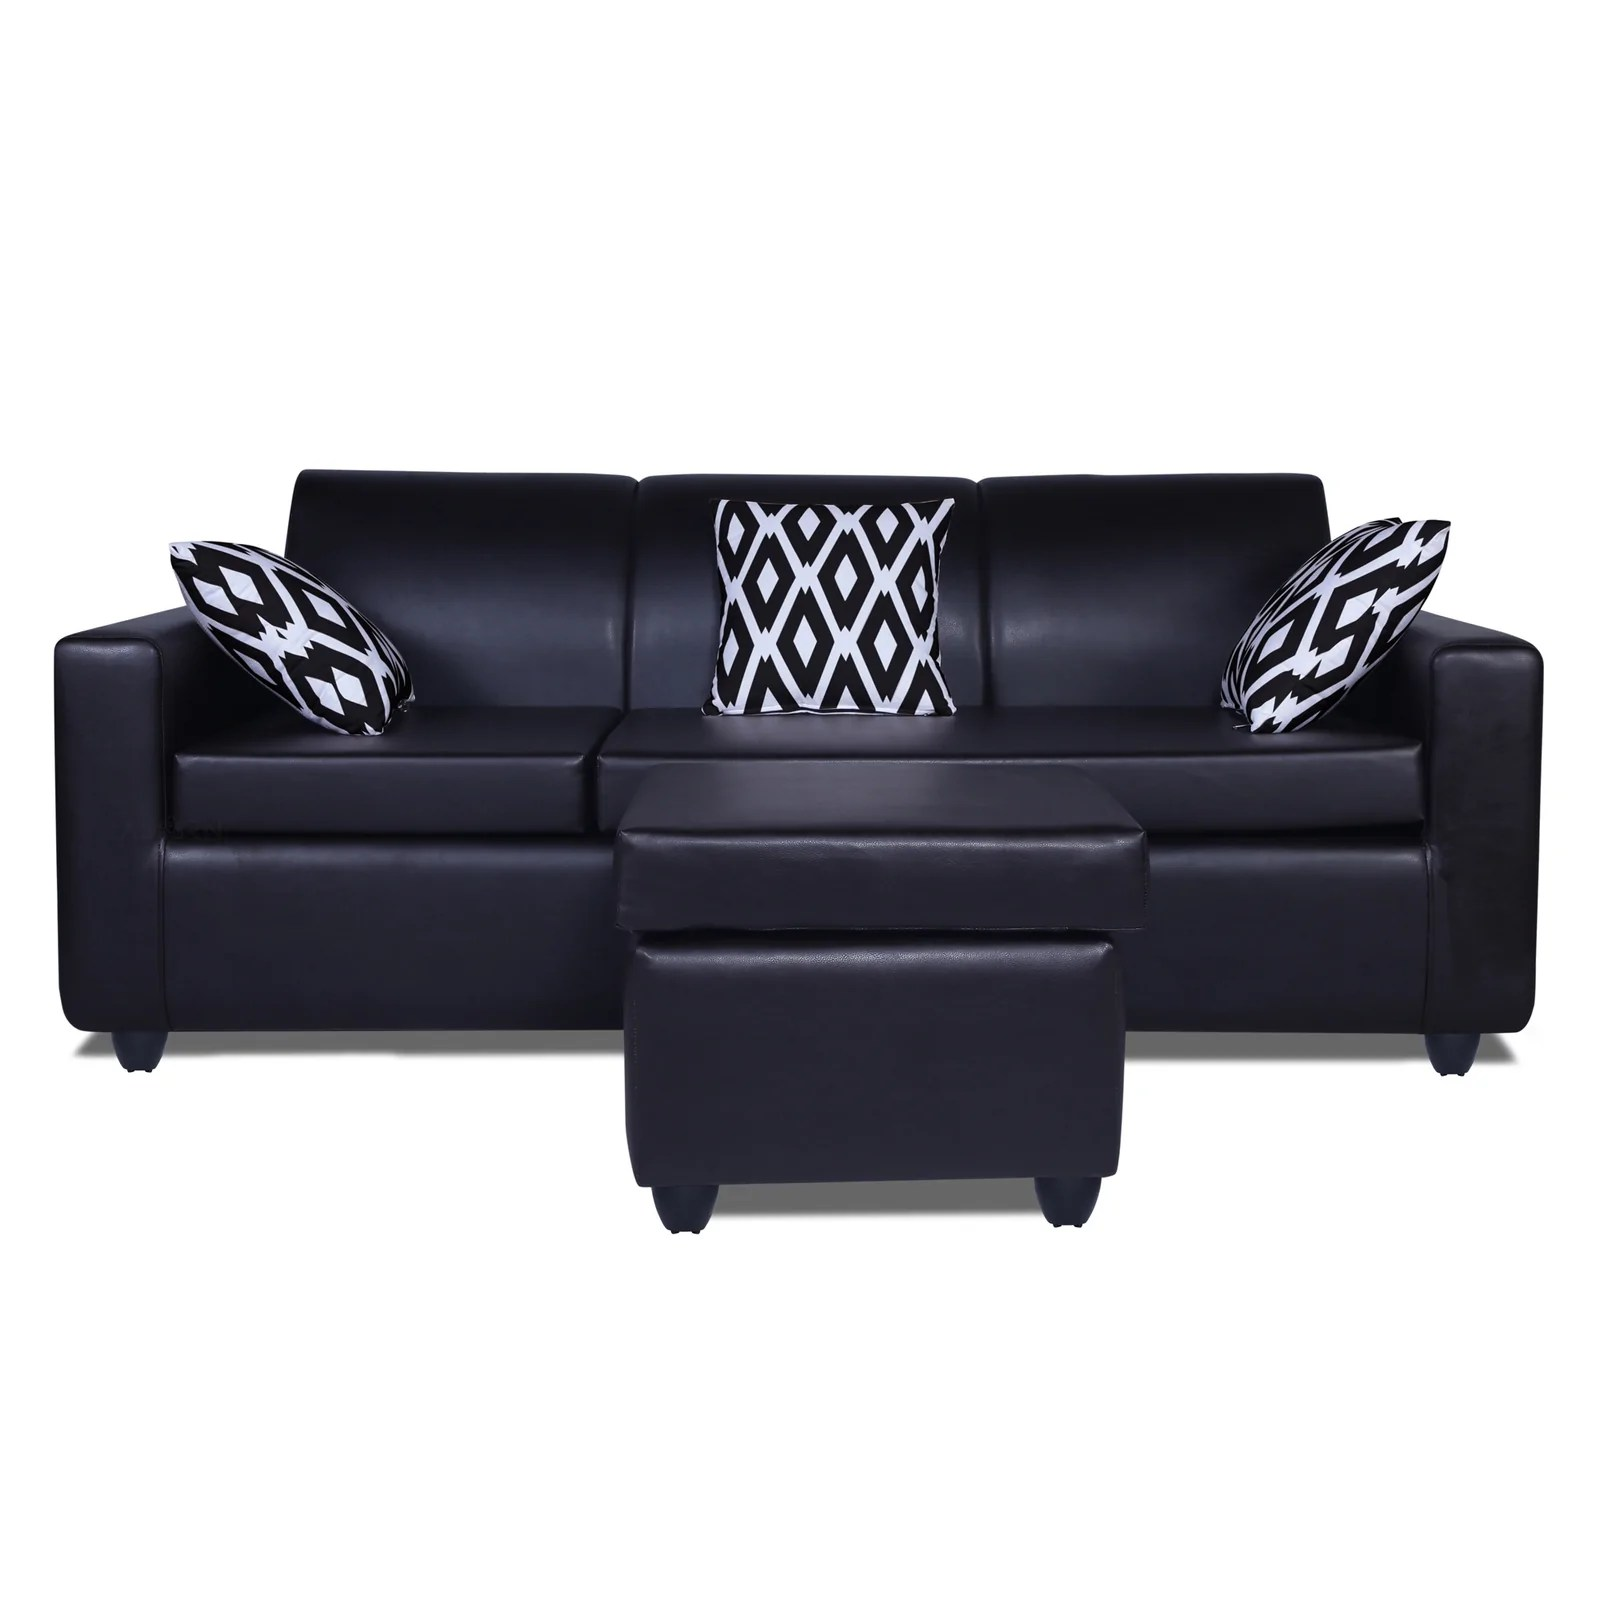 Premium Quality Monteno Leatherette Modular Sofa Set Black Adorn India